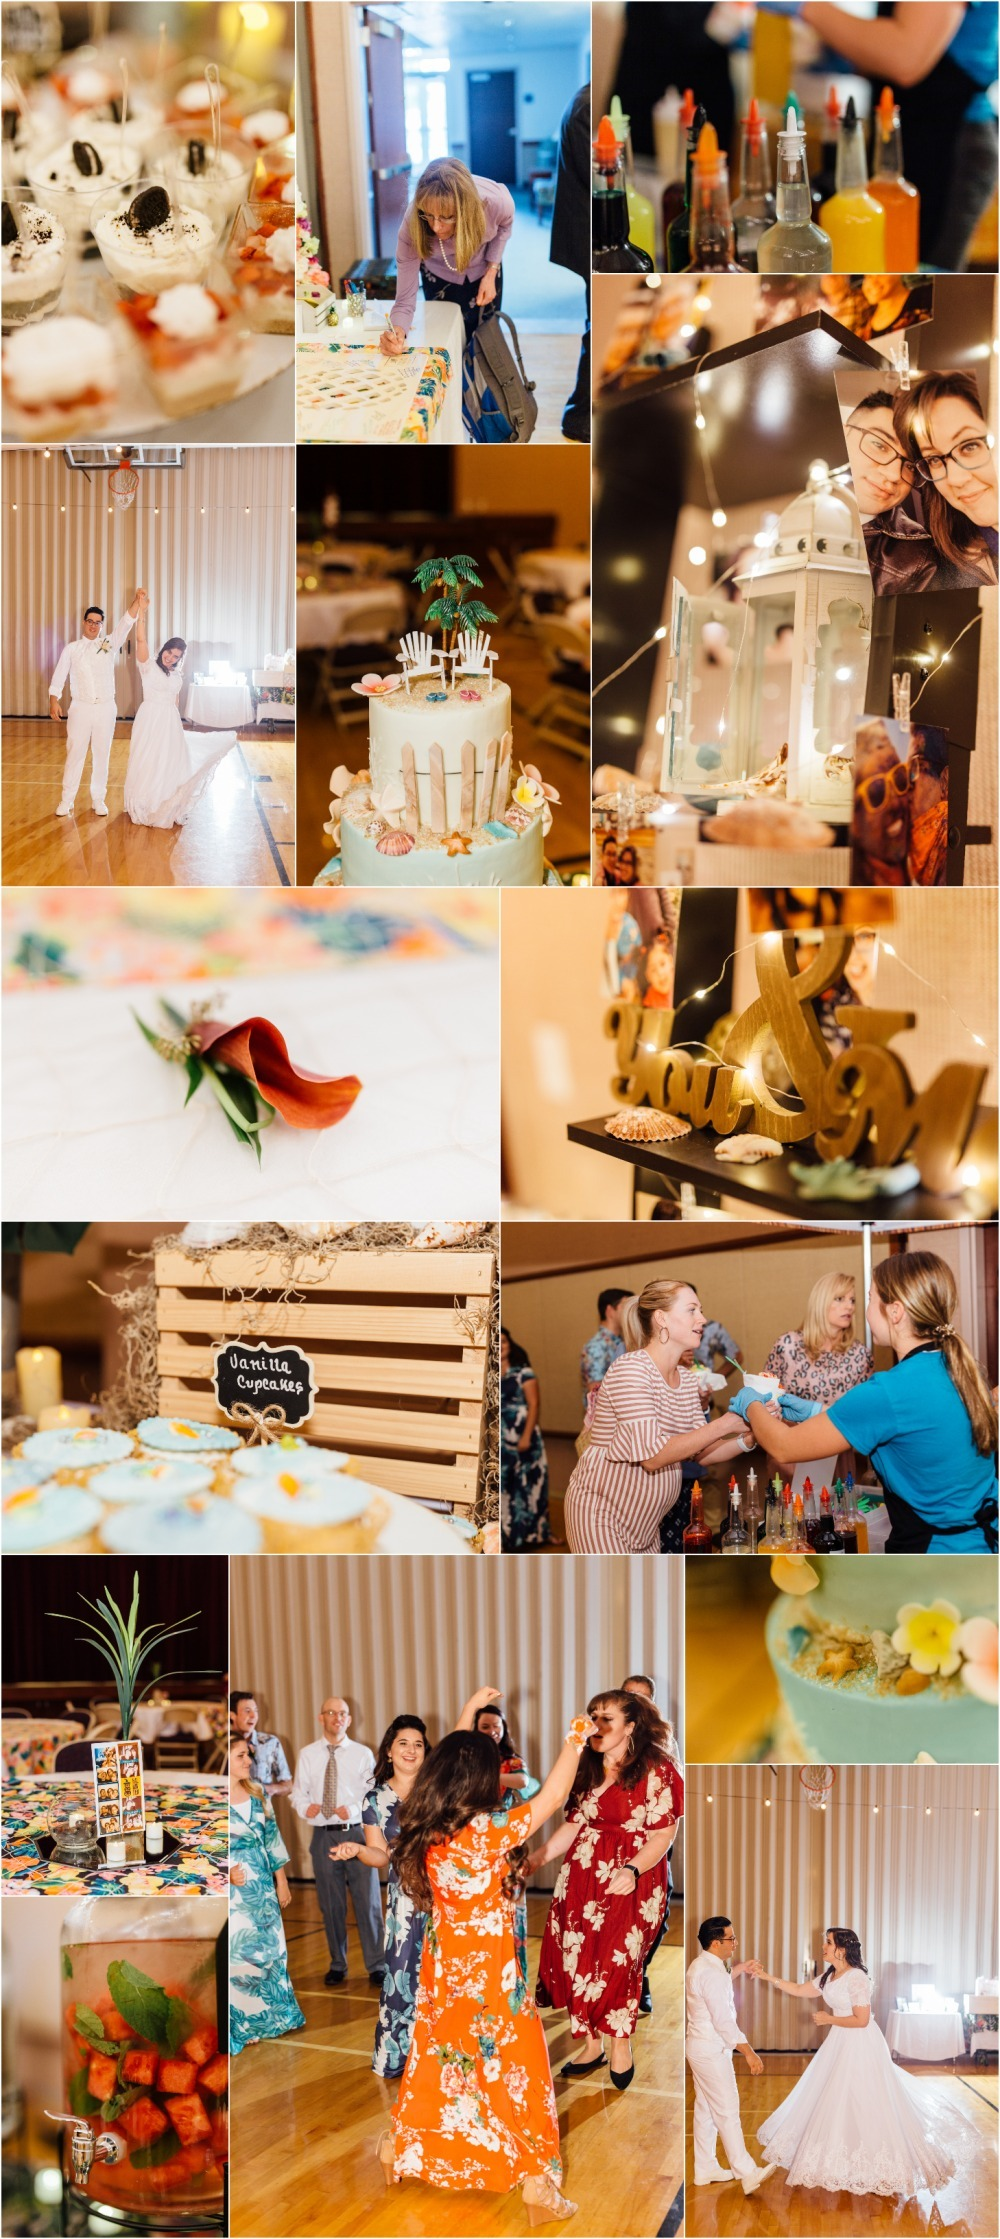 Utah County Wedding Reception Photographer